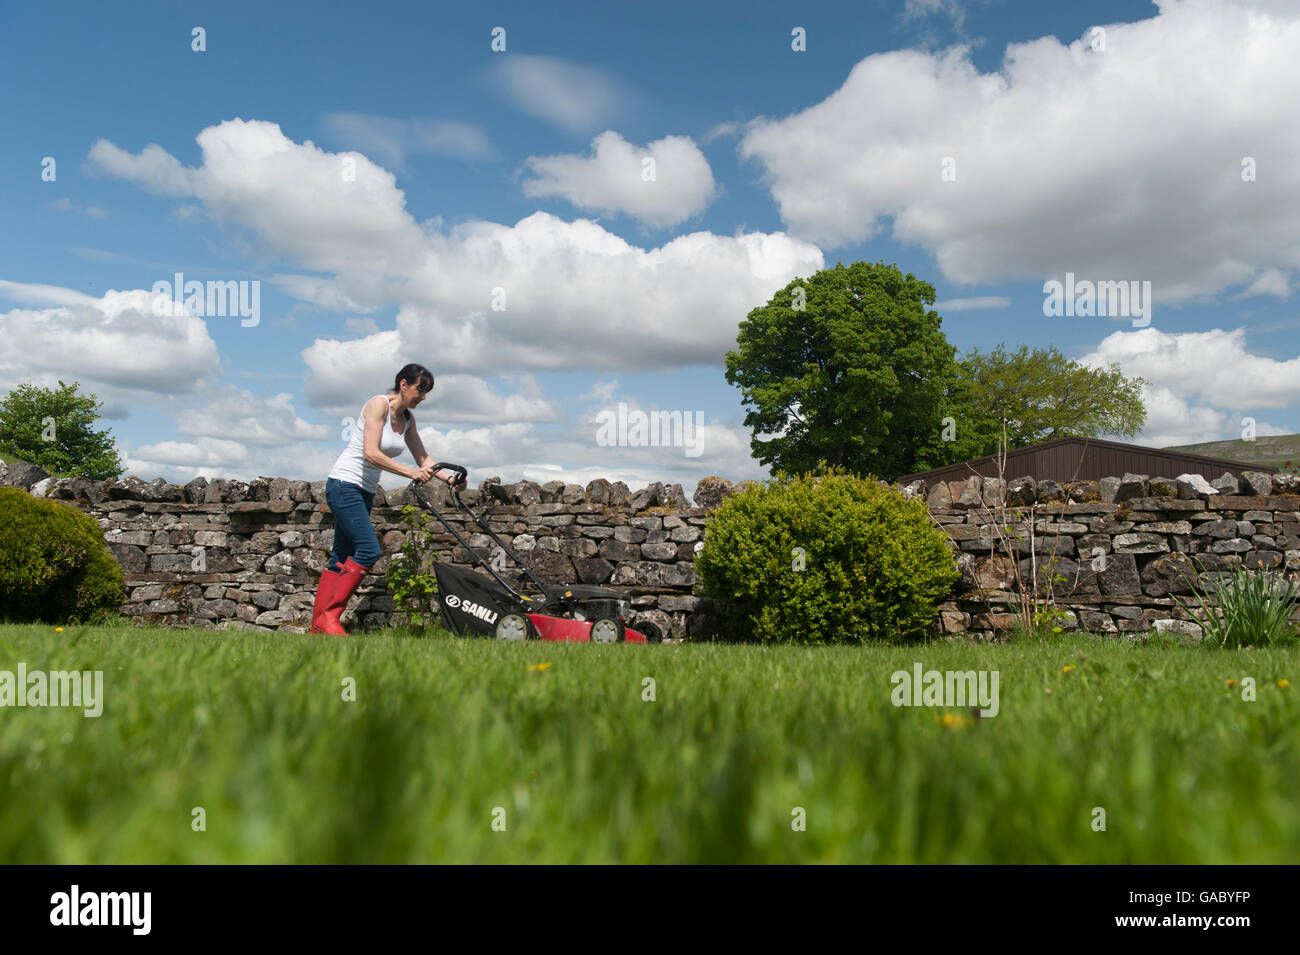 Lady mowing garden lawn with petrol powered mower. Hawes, North Yorkshire, UK. - Stock Image